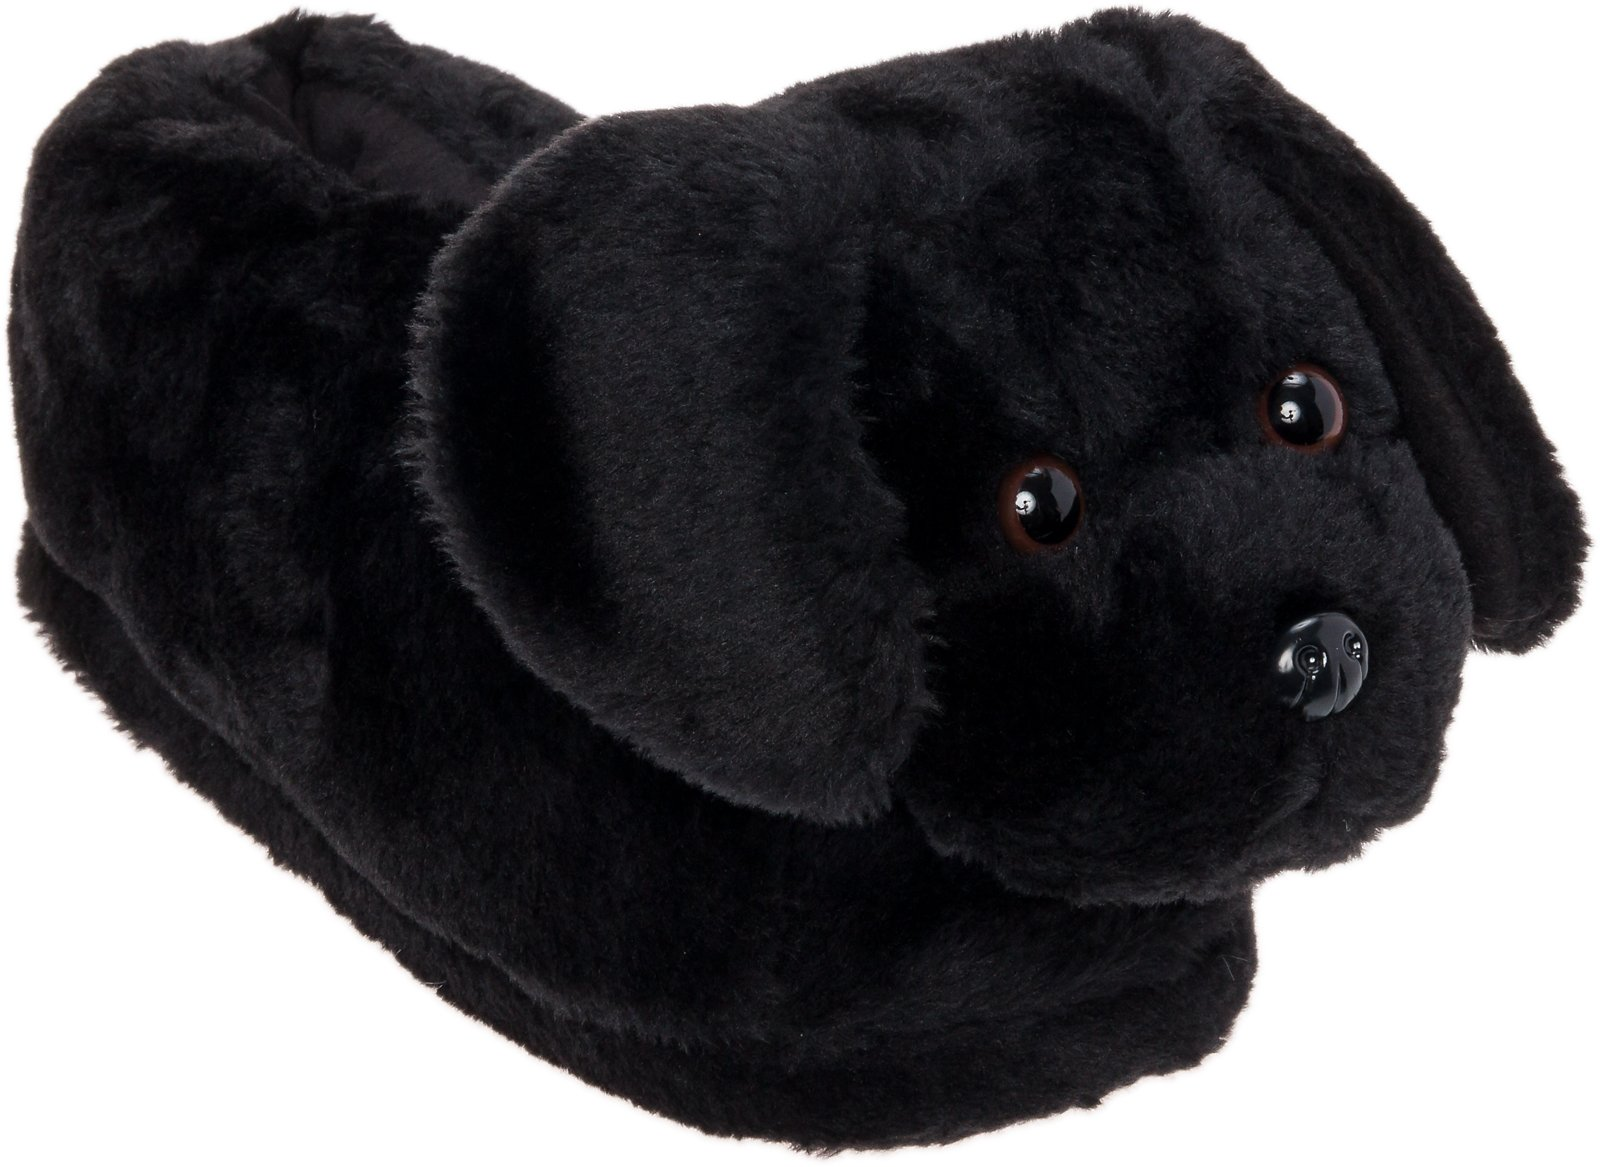 Silver Lilly Black Lab Slippers - Plush Labrador Dog Slippers w/Platform (Black, Medium)